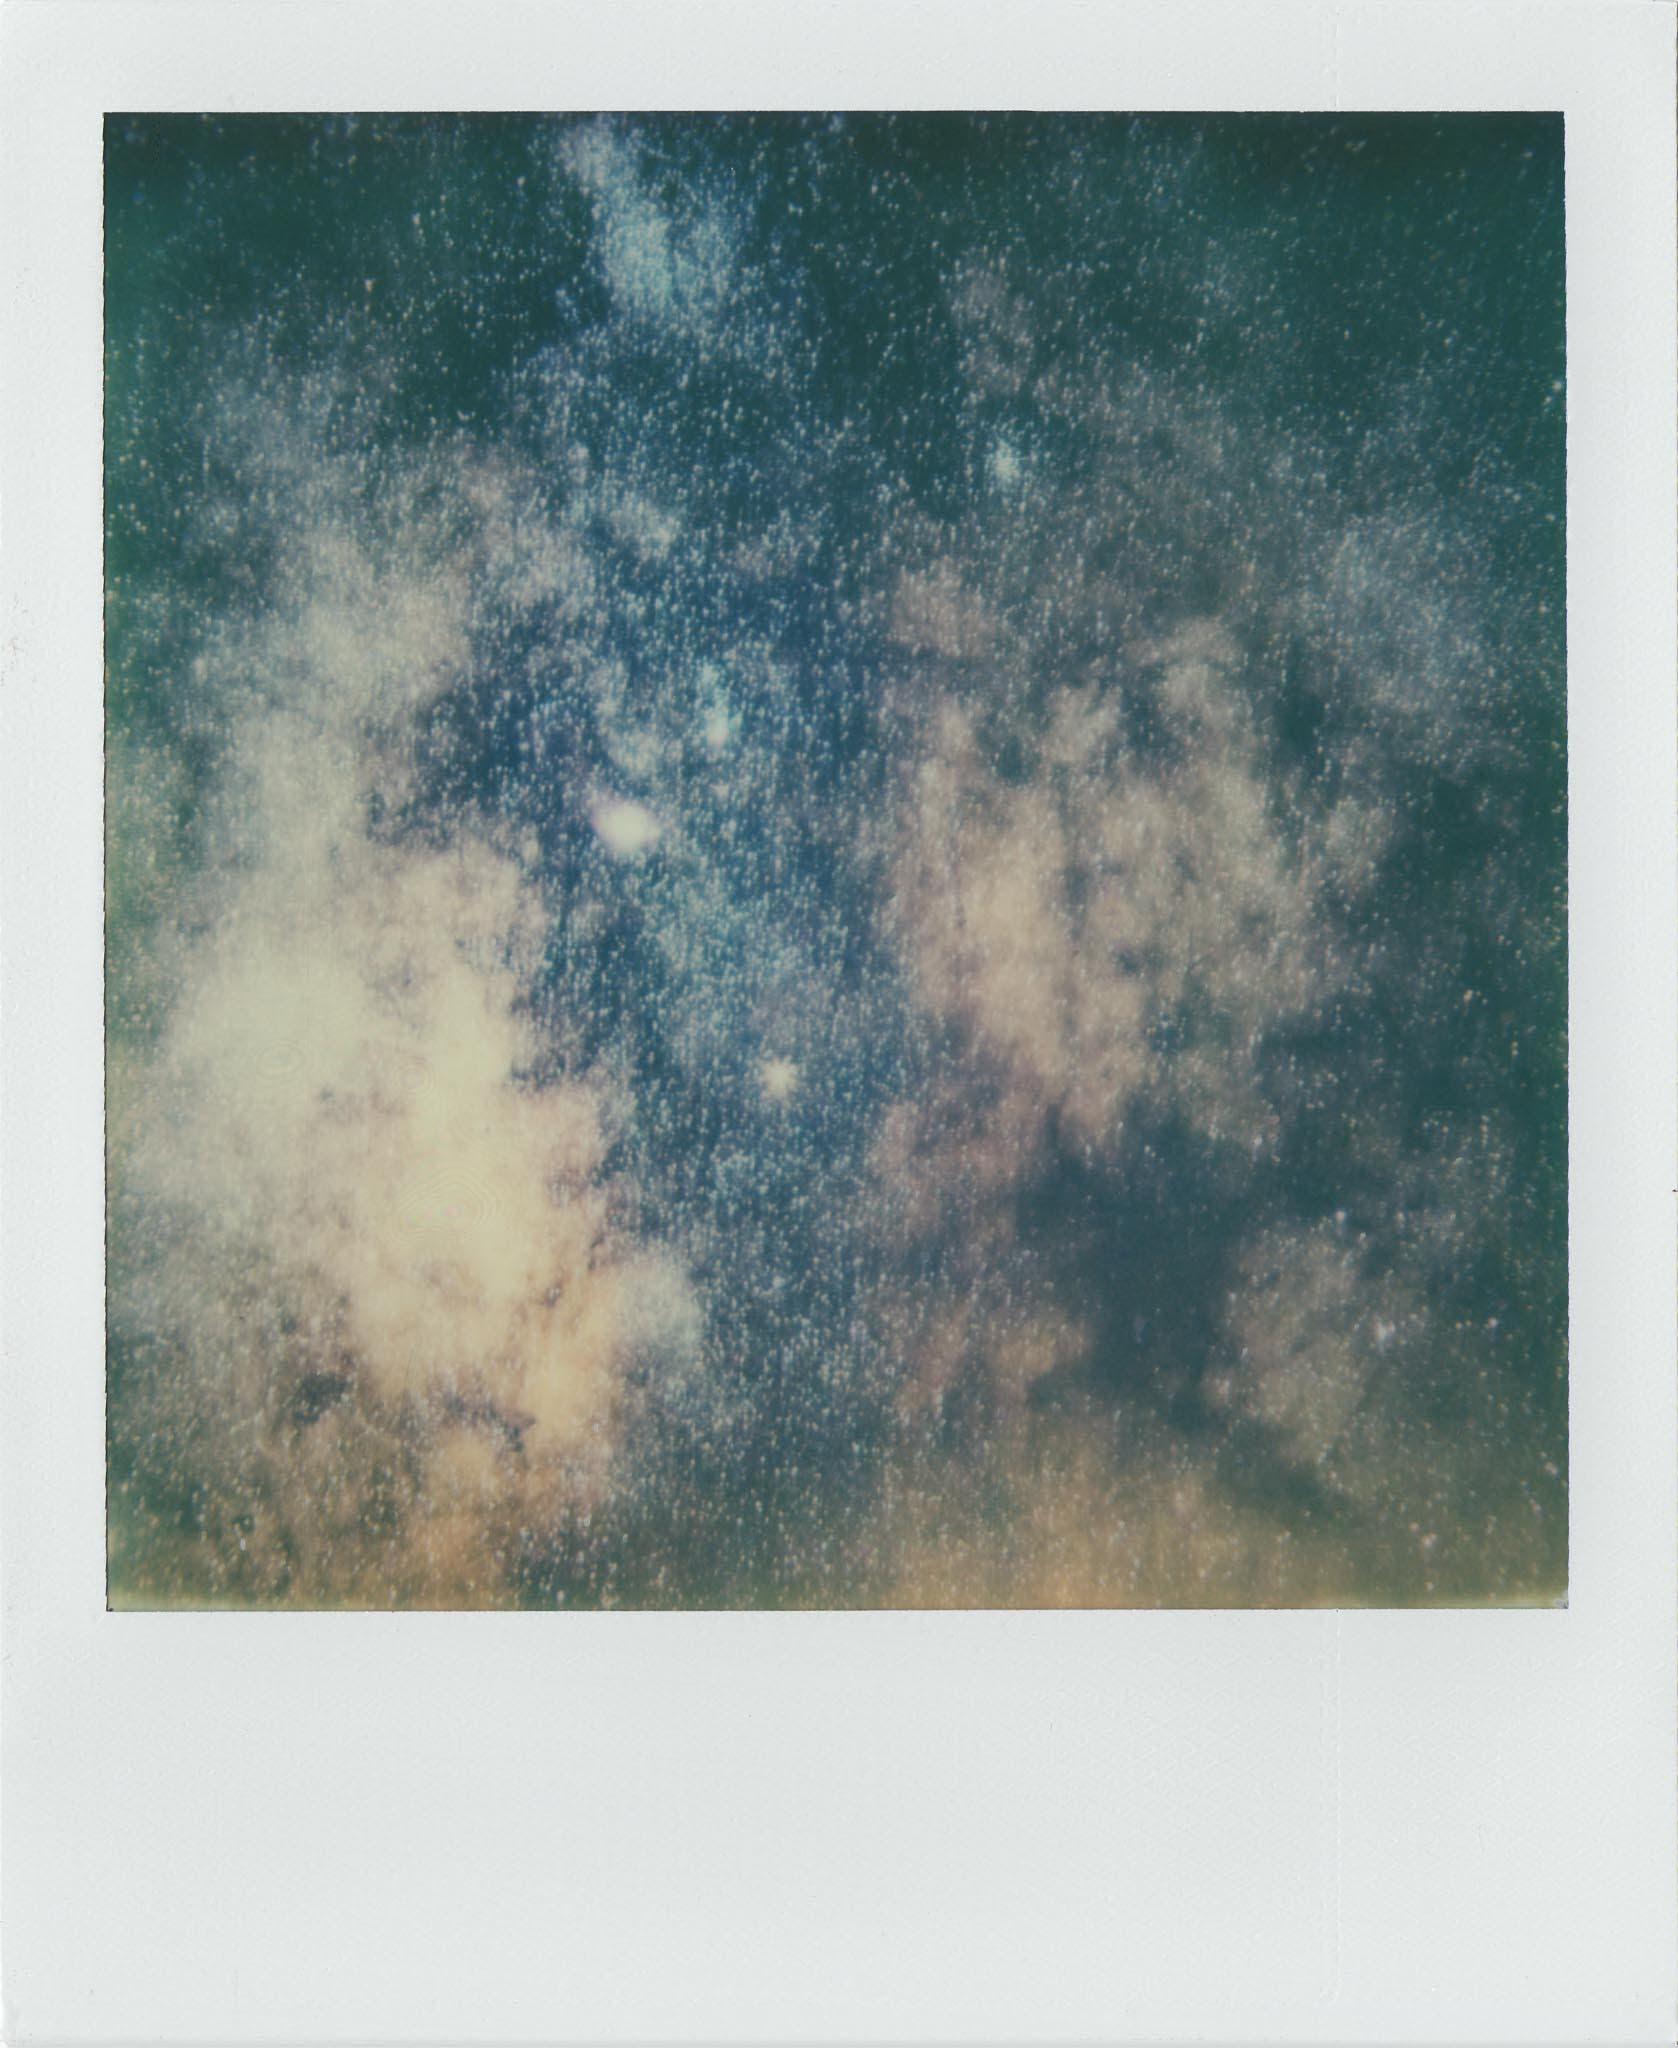 These Beautiful Images of the Milky Way Were Shot on Impossible Project 600 Film